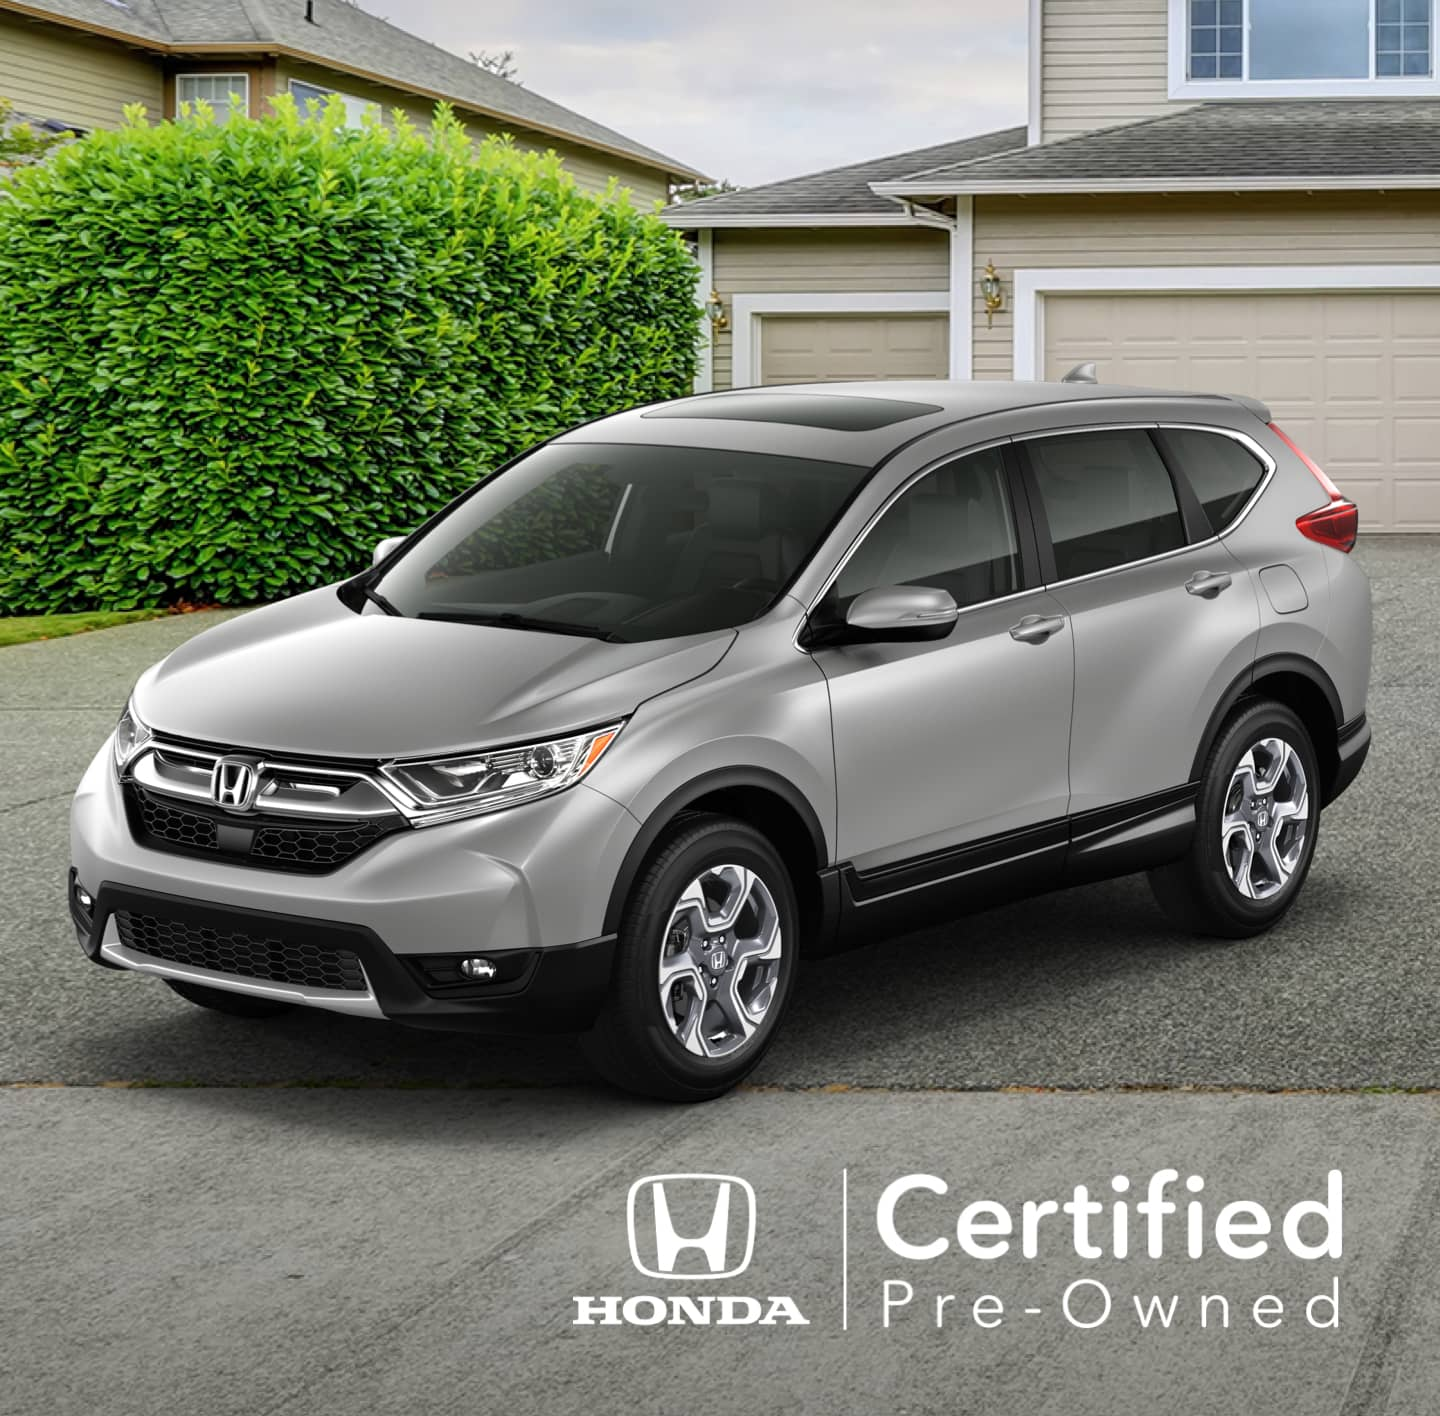 Honda Certified Pre-Owned vehicle in driveway